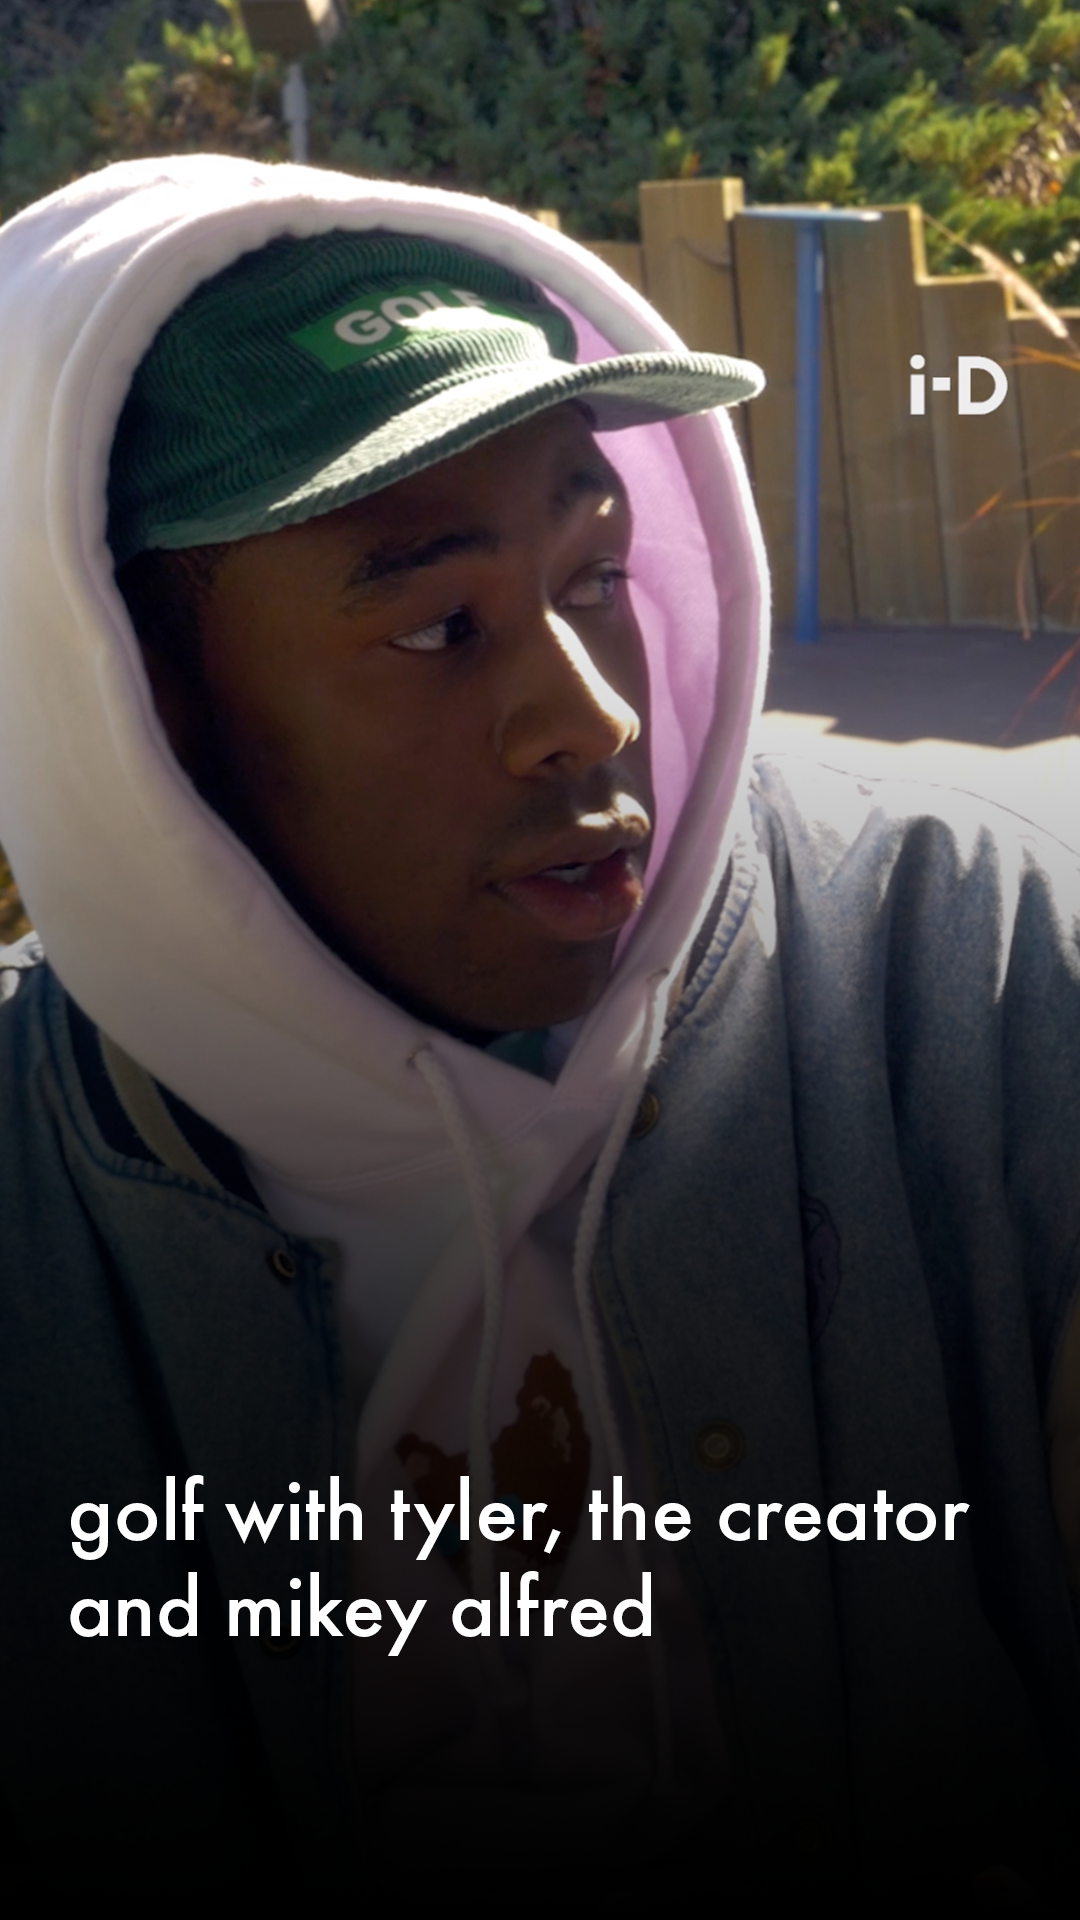 I D Meets Tyler The Creator And Mikey Alfred Illegal Civilization Video Tyler The Creator Wallpaper Tyler The Creator The Creator